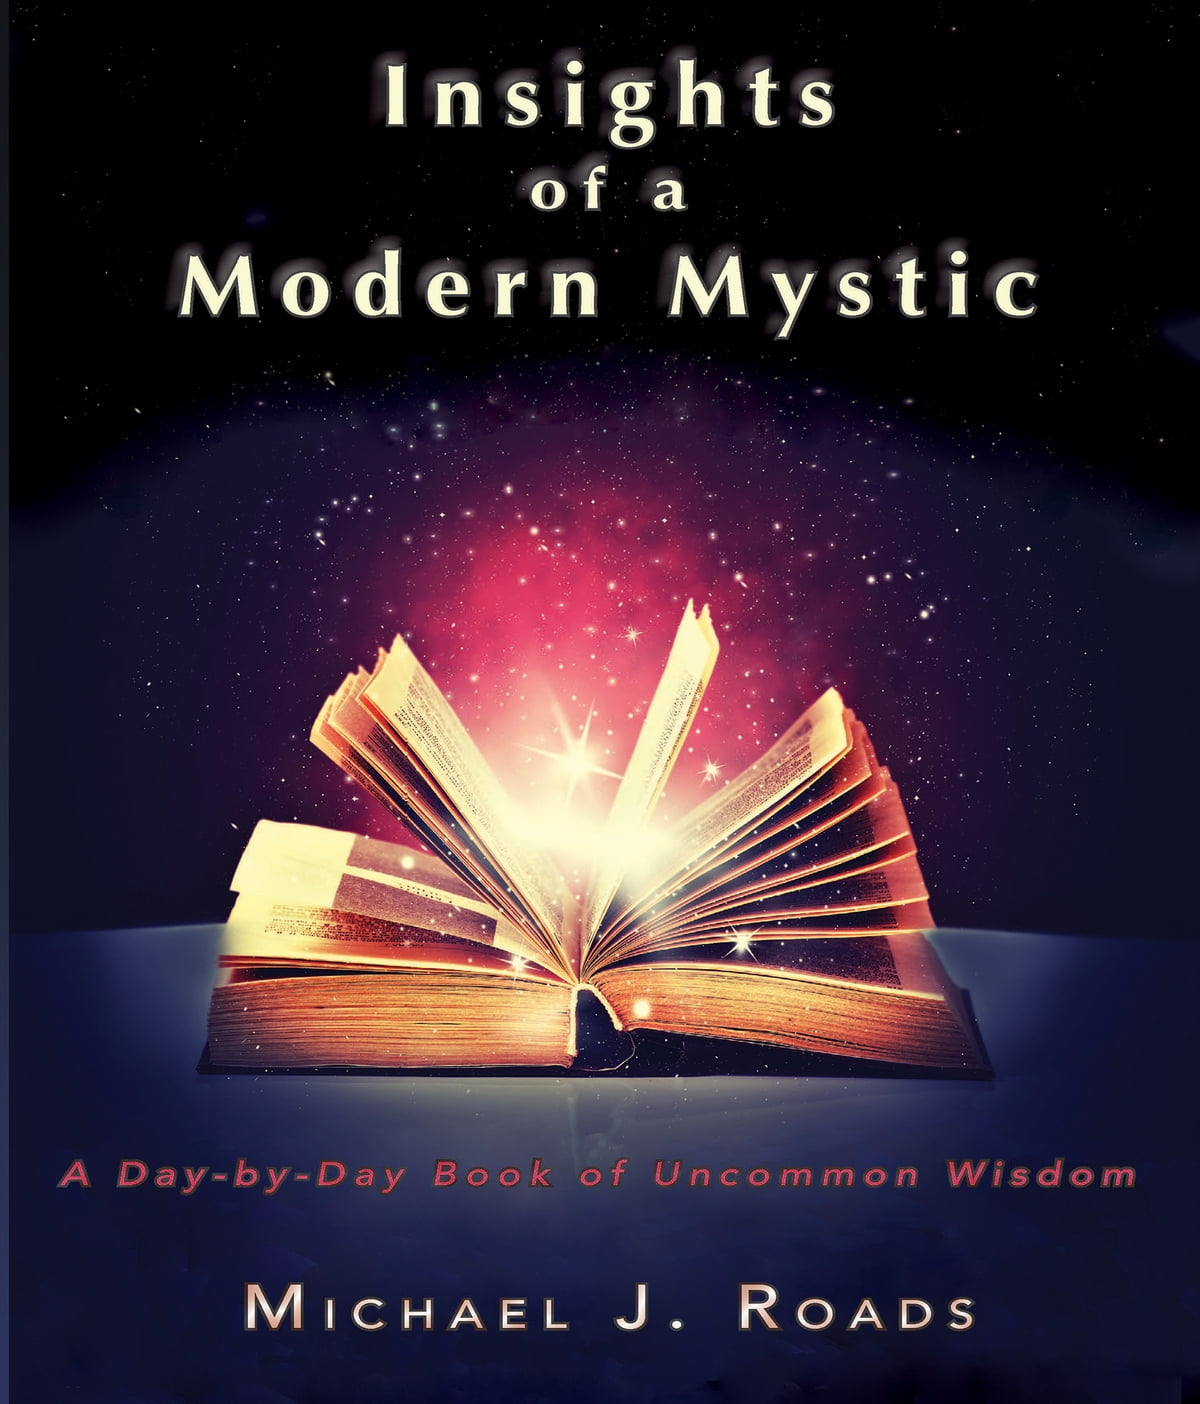 Insights Of A Modern Mystic: A Daybyday Book Of Uncommon Wisdom Ebook By  Michael J Roads  9781942497158  Kobo